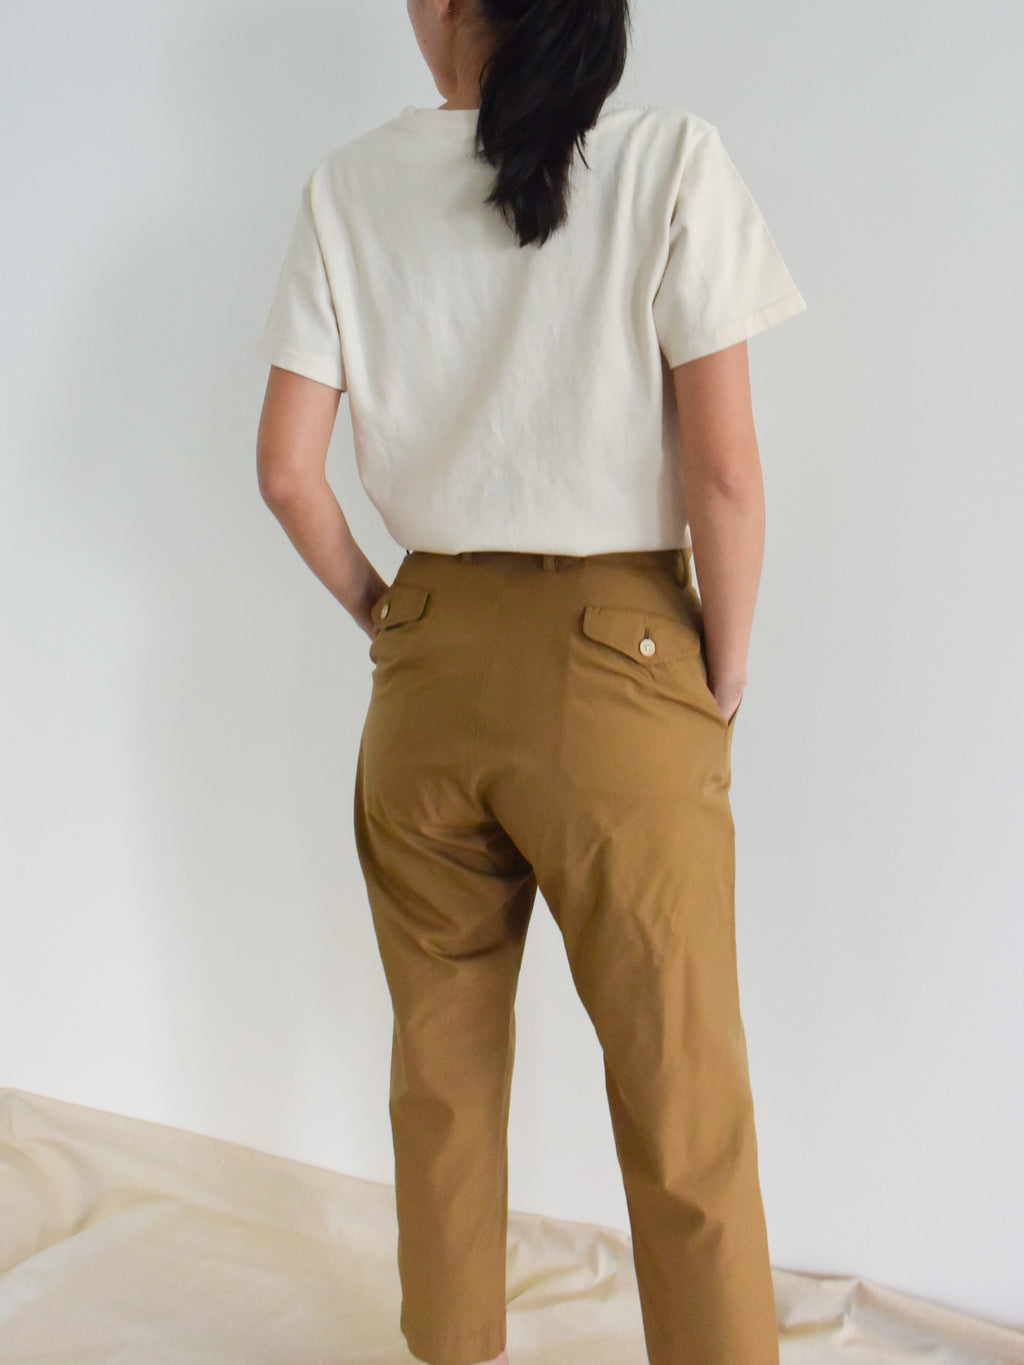 Namu Shop - Kaptain Sunshine Traveller Pants